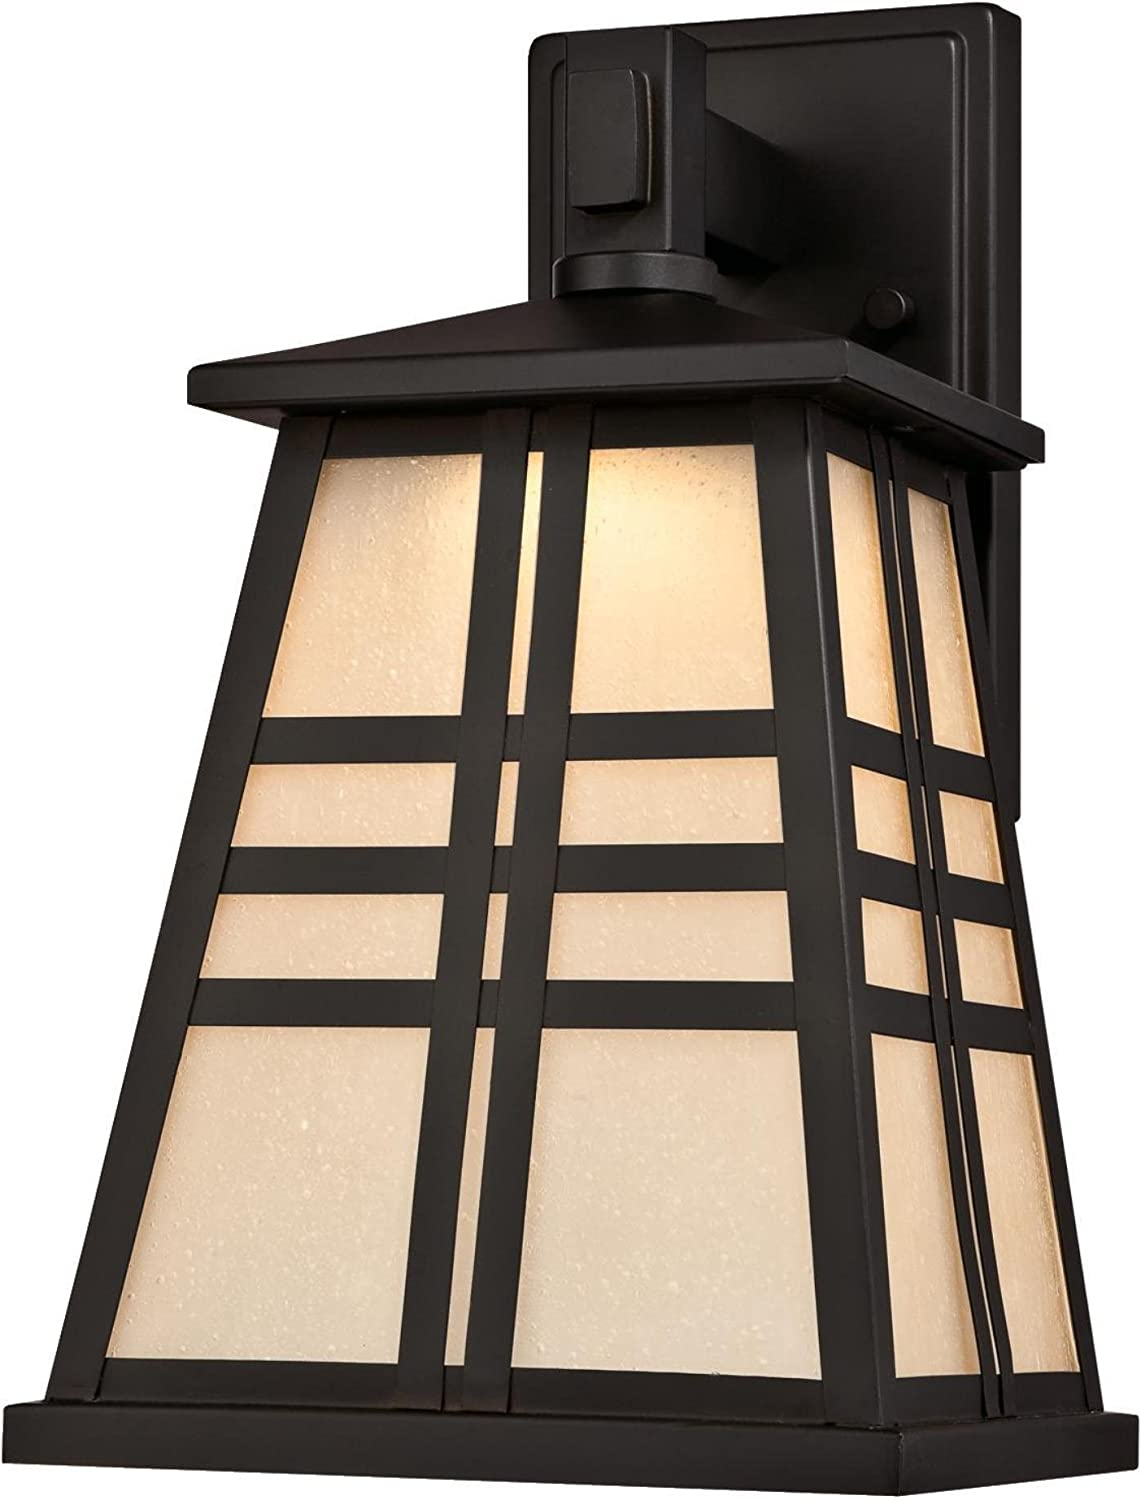 Westinghouse Lighting 6339700 Creekview One-Light LED Outdoor Wall Fixture with Amber Frosted Seeded Glass, Oil Rubbed Bronze